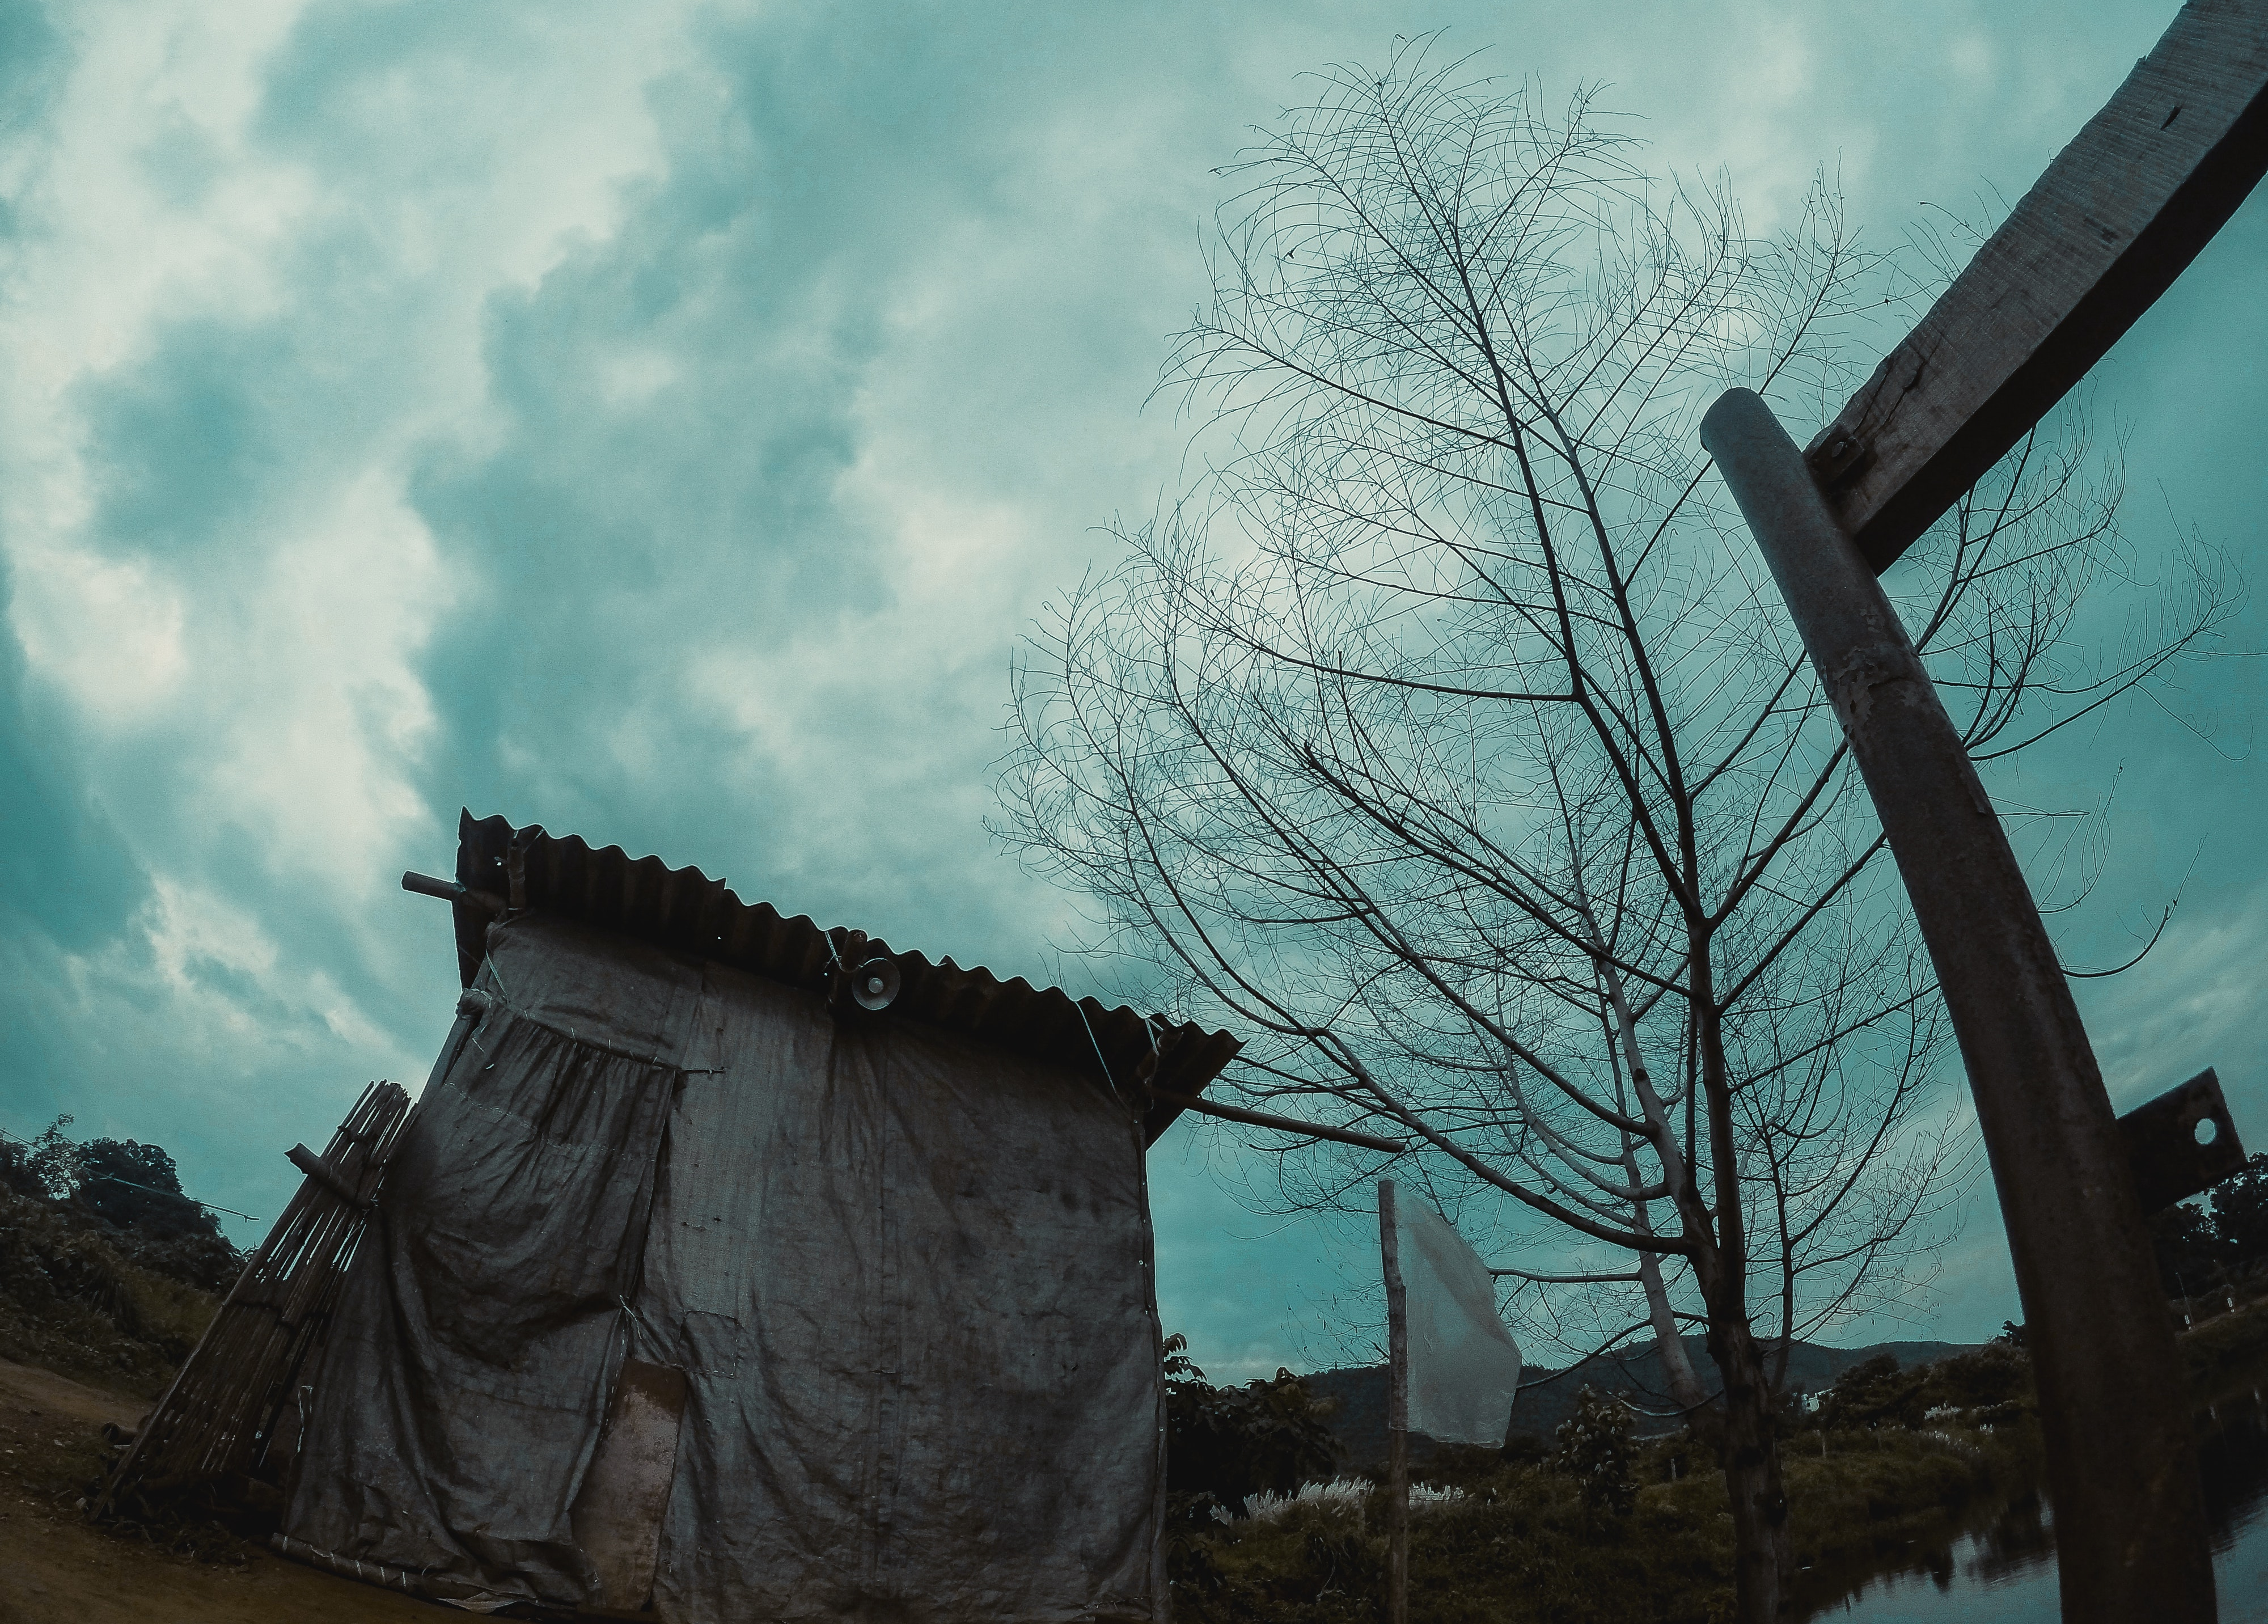 Photo of Abandoned House, Architecture, Water, Tree, Sky, HQ Photo